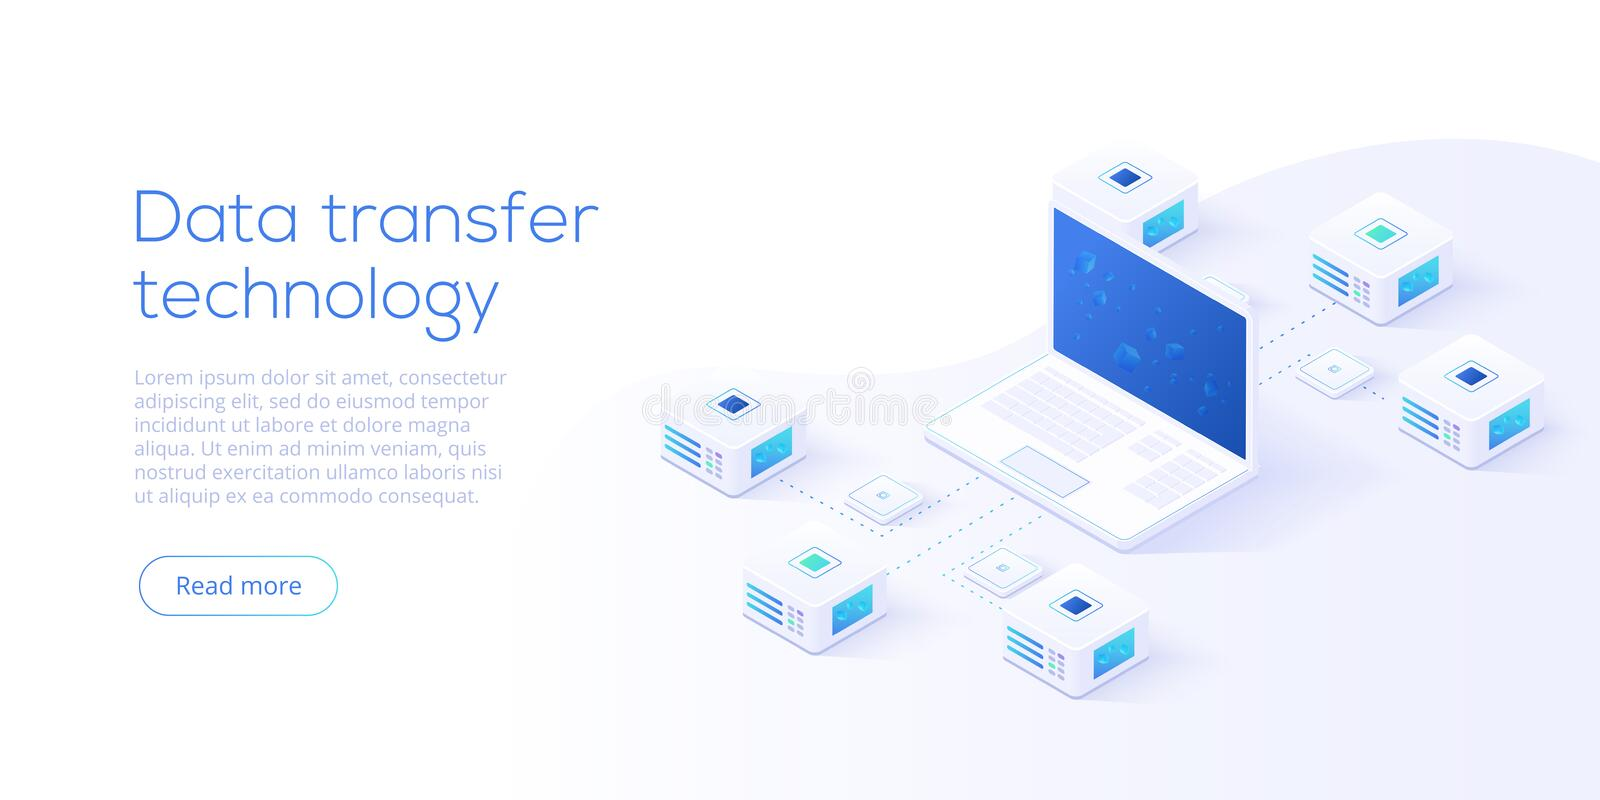 Data transfer via server isometric vector illustration. Abstract. 3d datacenter or blockchain background. Network mainframe website header layout. Computer vector illustration